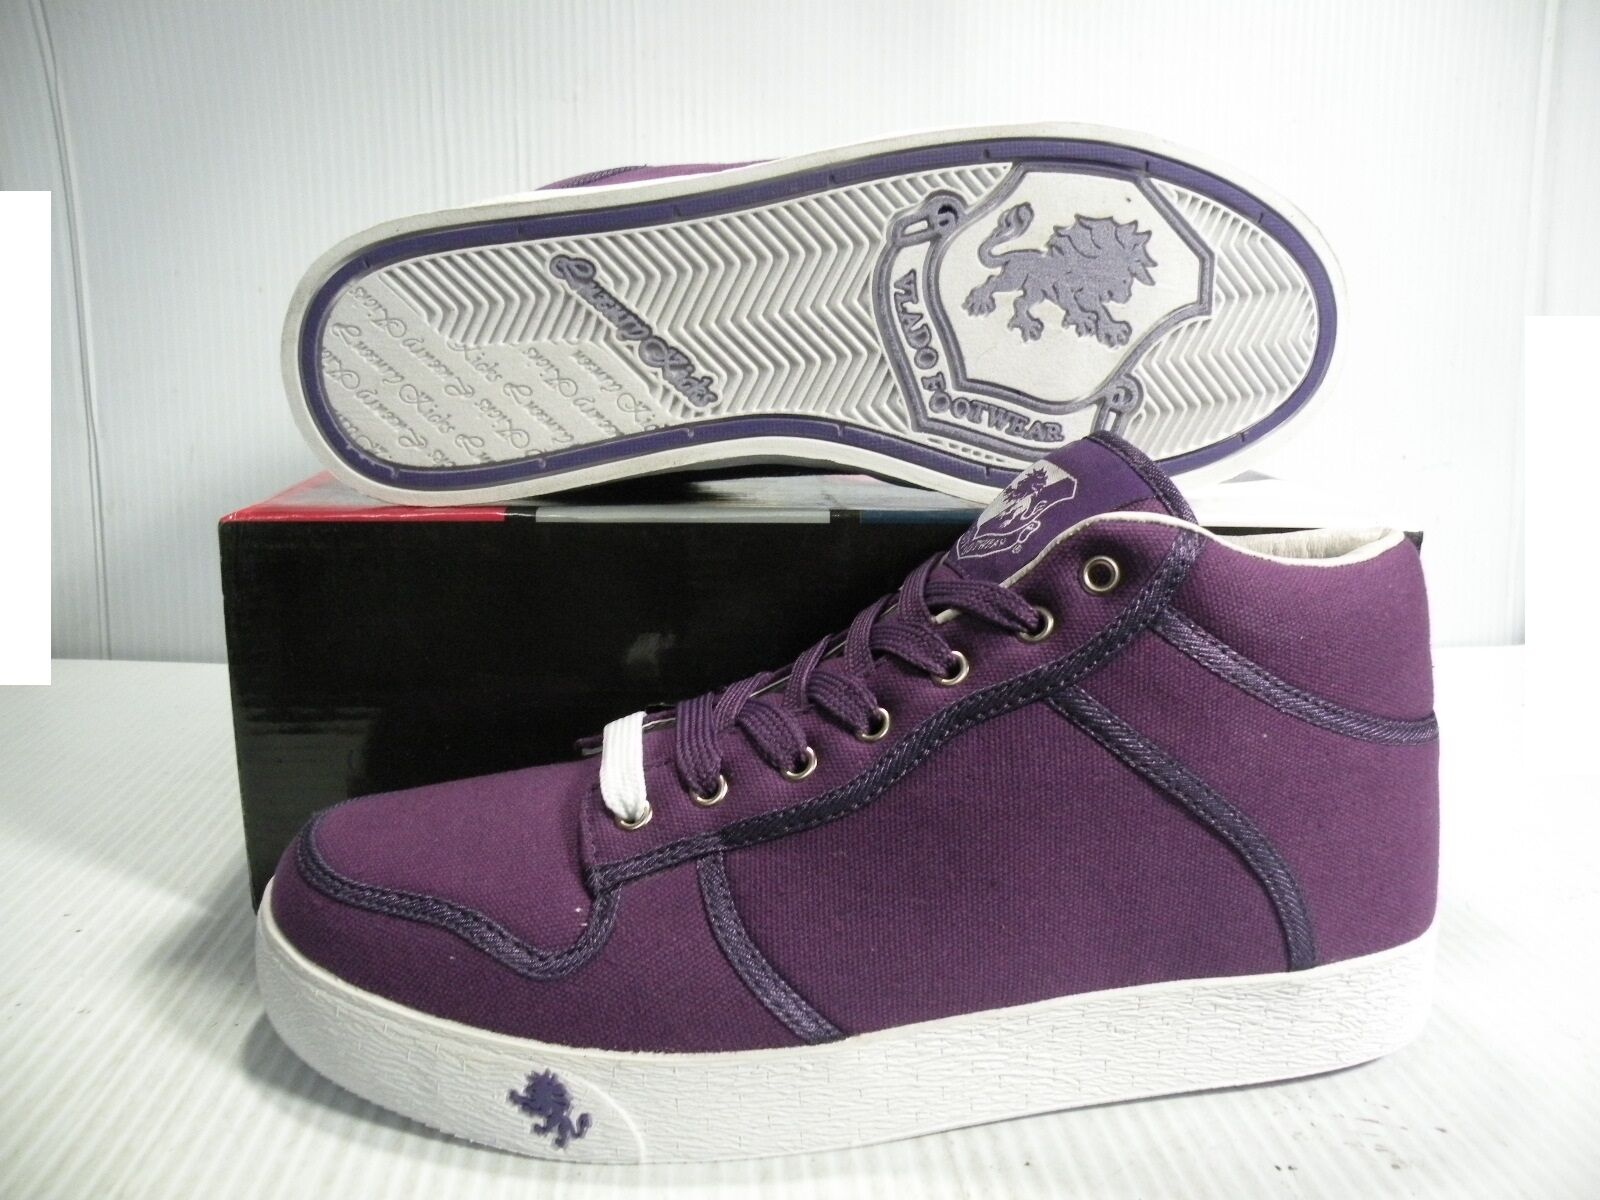 VLADO SPECTRO MID SNEAKERS Uomo SHOES PURPLE 1G-1060-8 SIZE 9.5 9.5 9.5 NEW 48cc8d